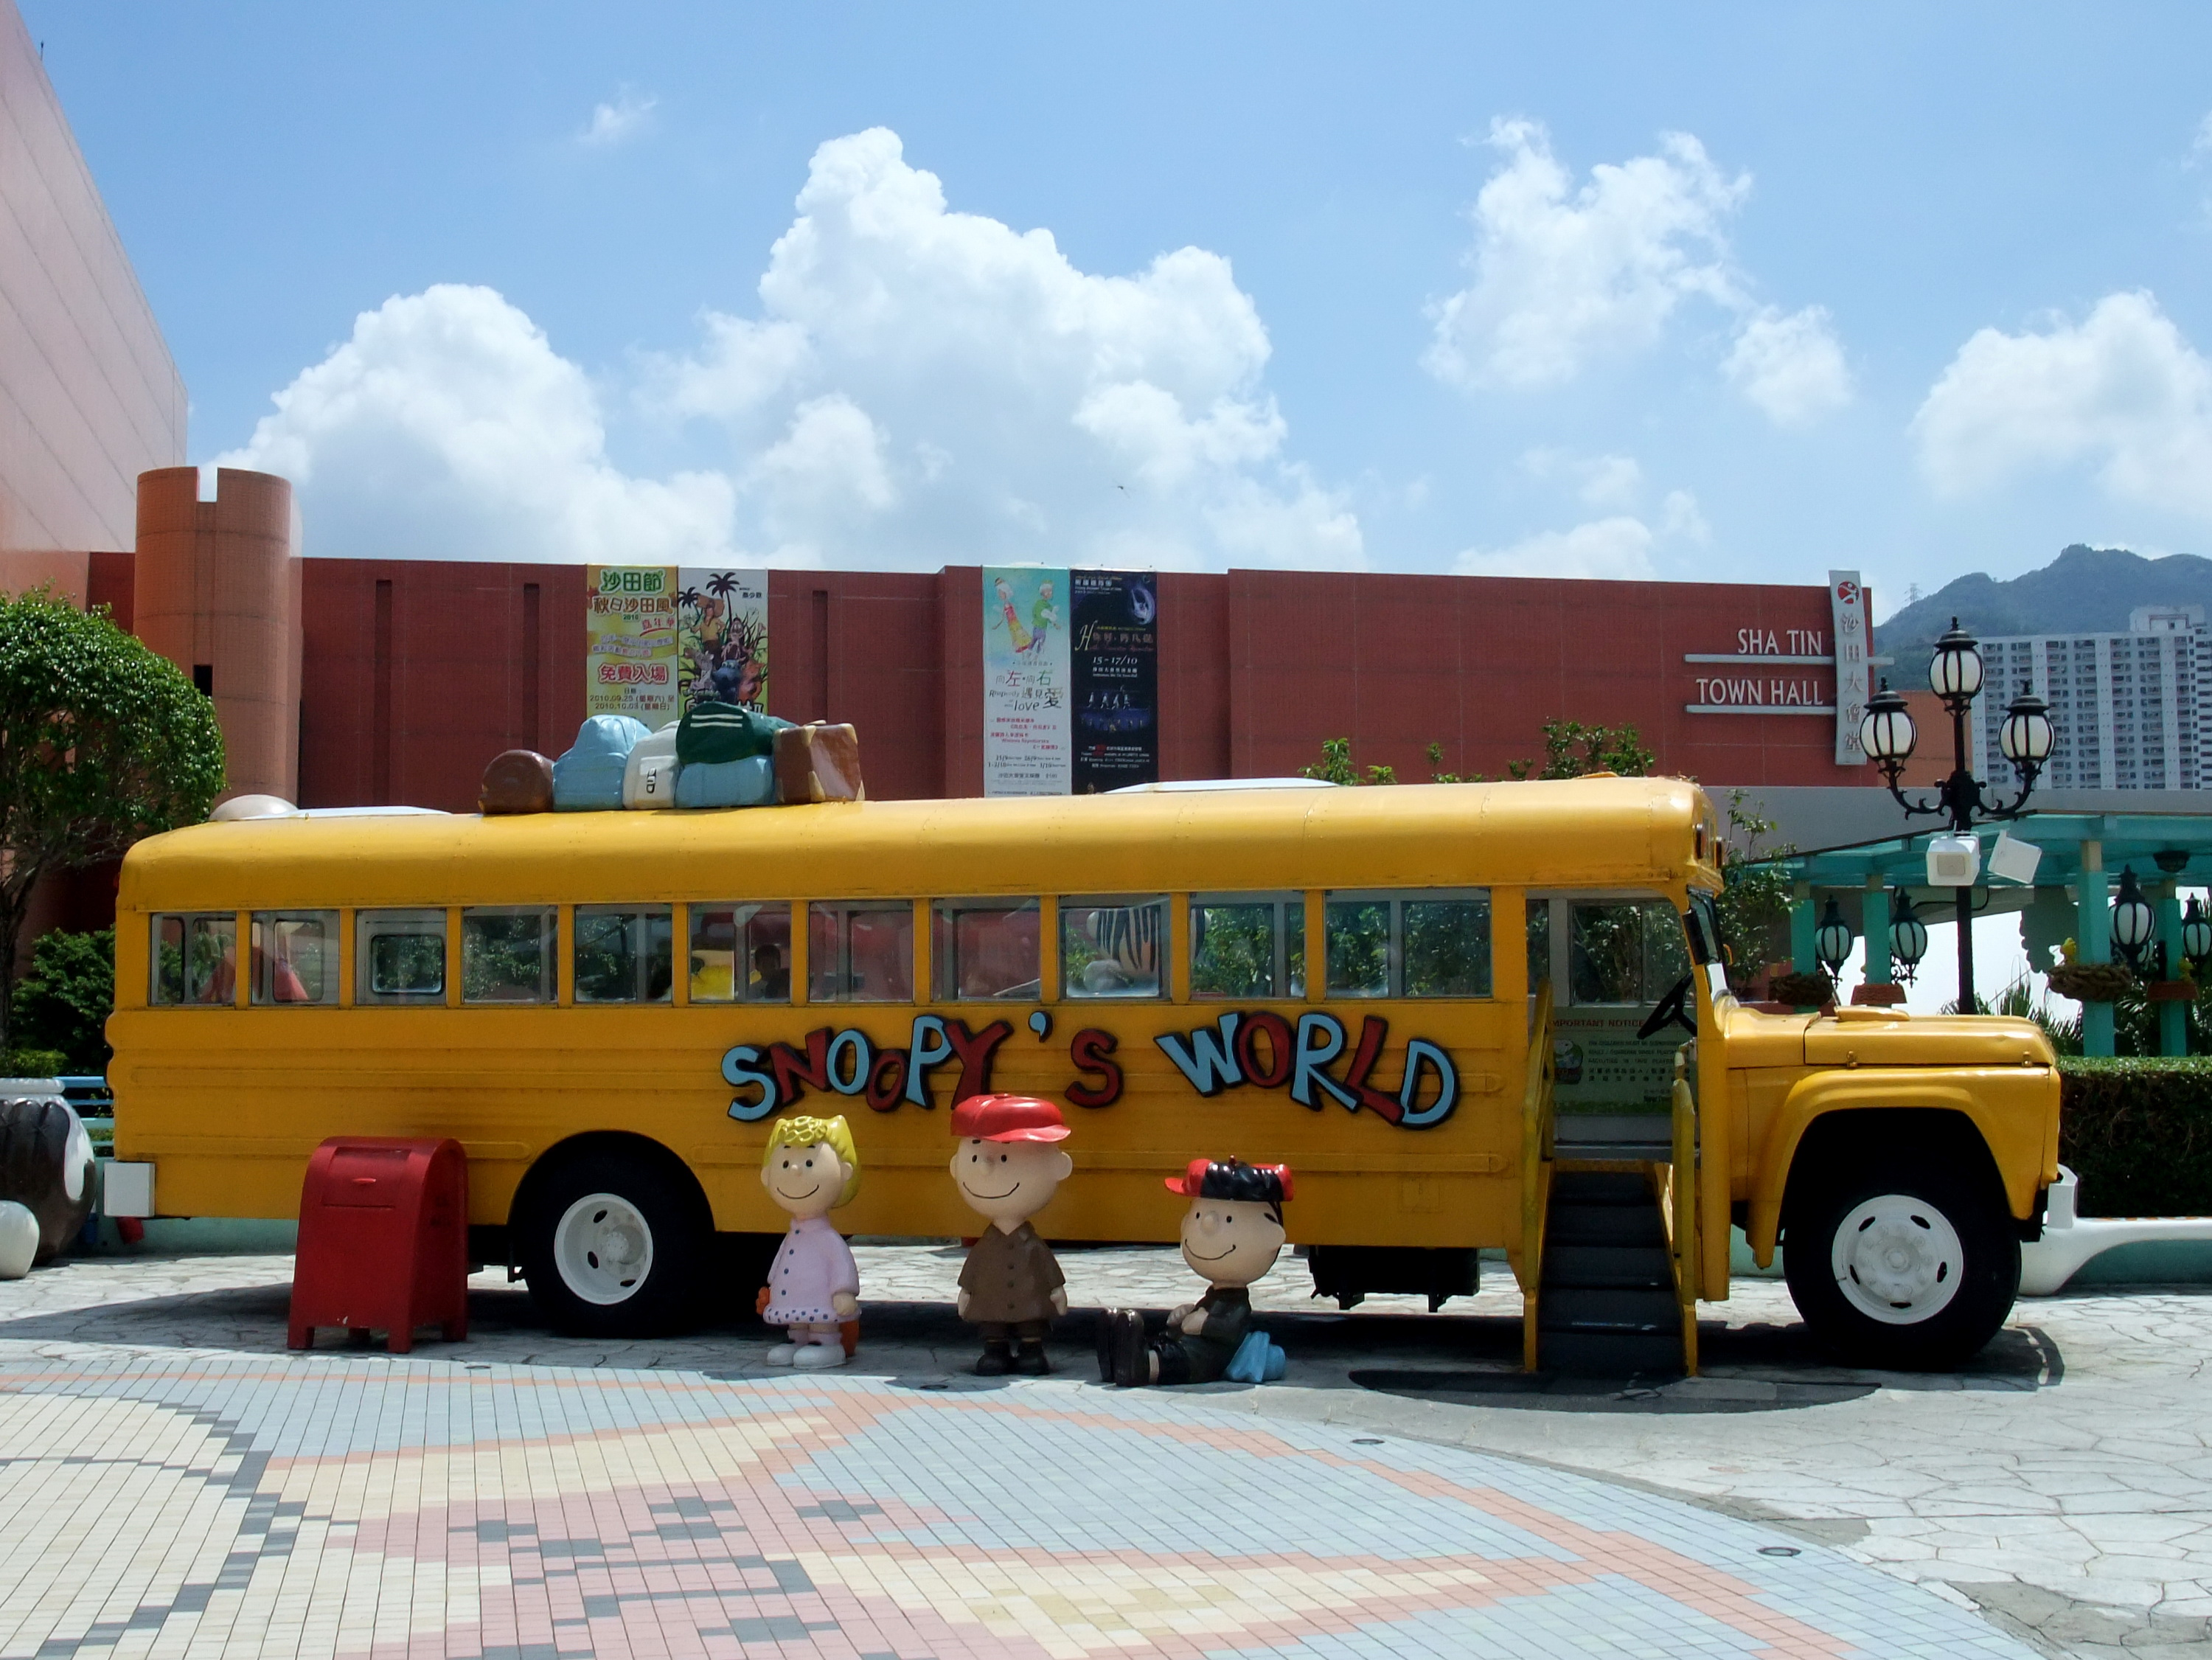 File Snoopy S World At New Town Plaza In Hong Kong Yellow School